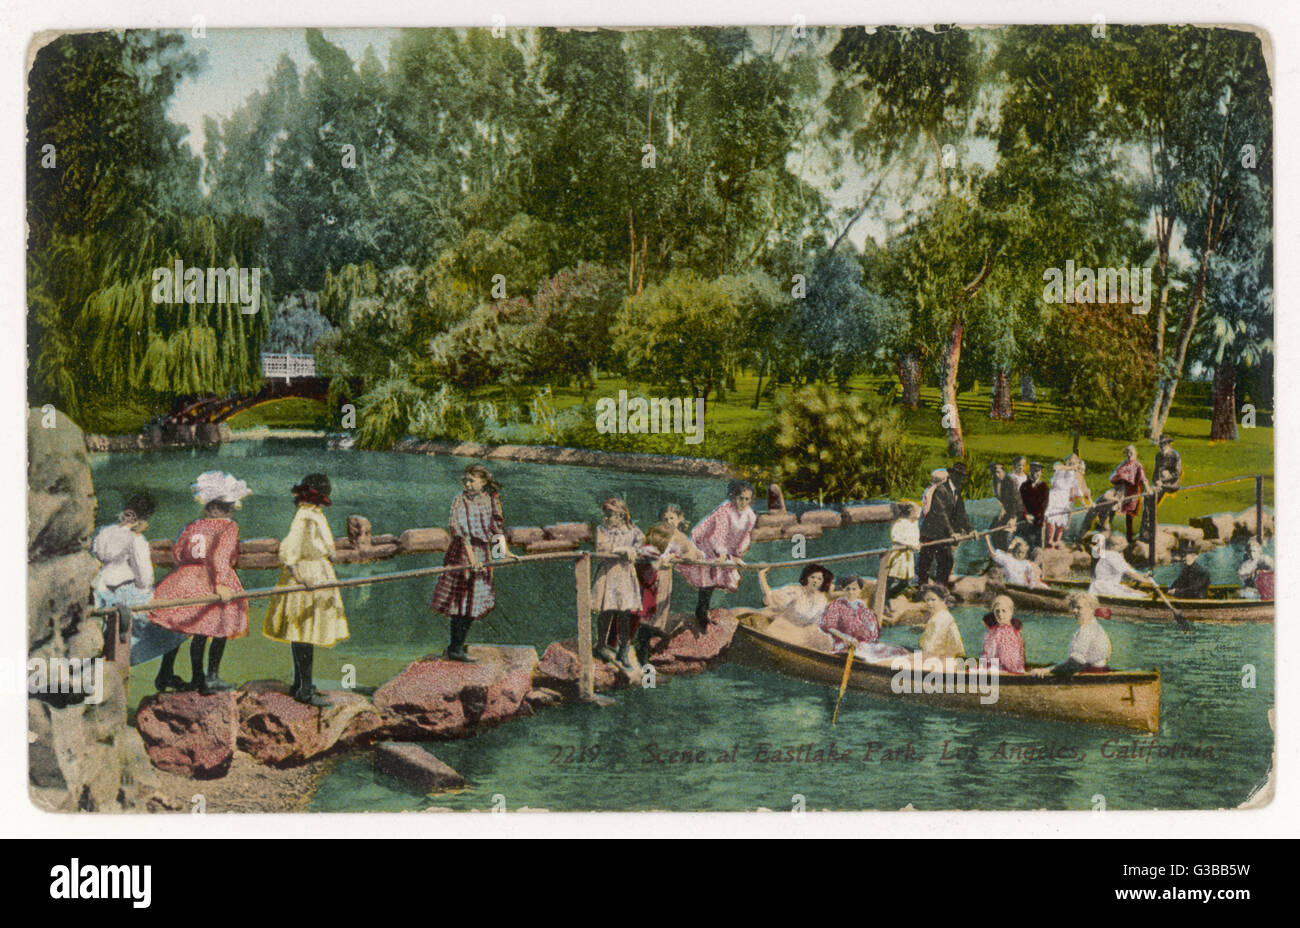 Children enjoying themselves in Eastlake Park, Los Angeles,  California       Date: circa 1910 - Stock Image